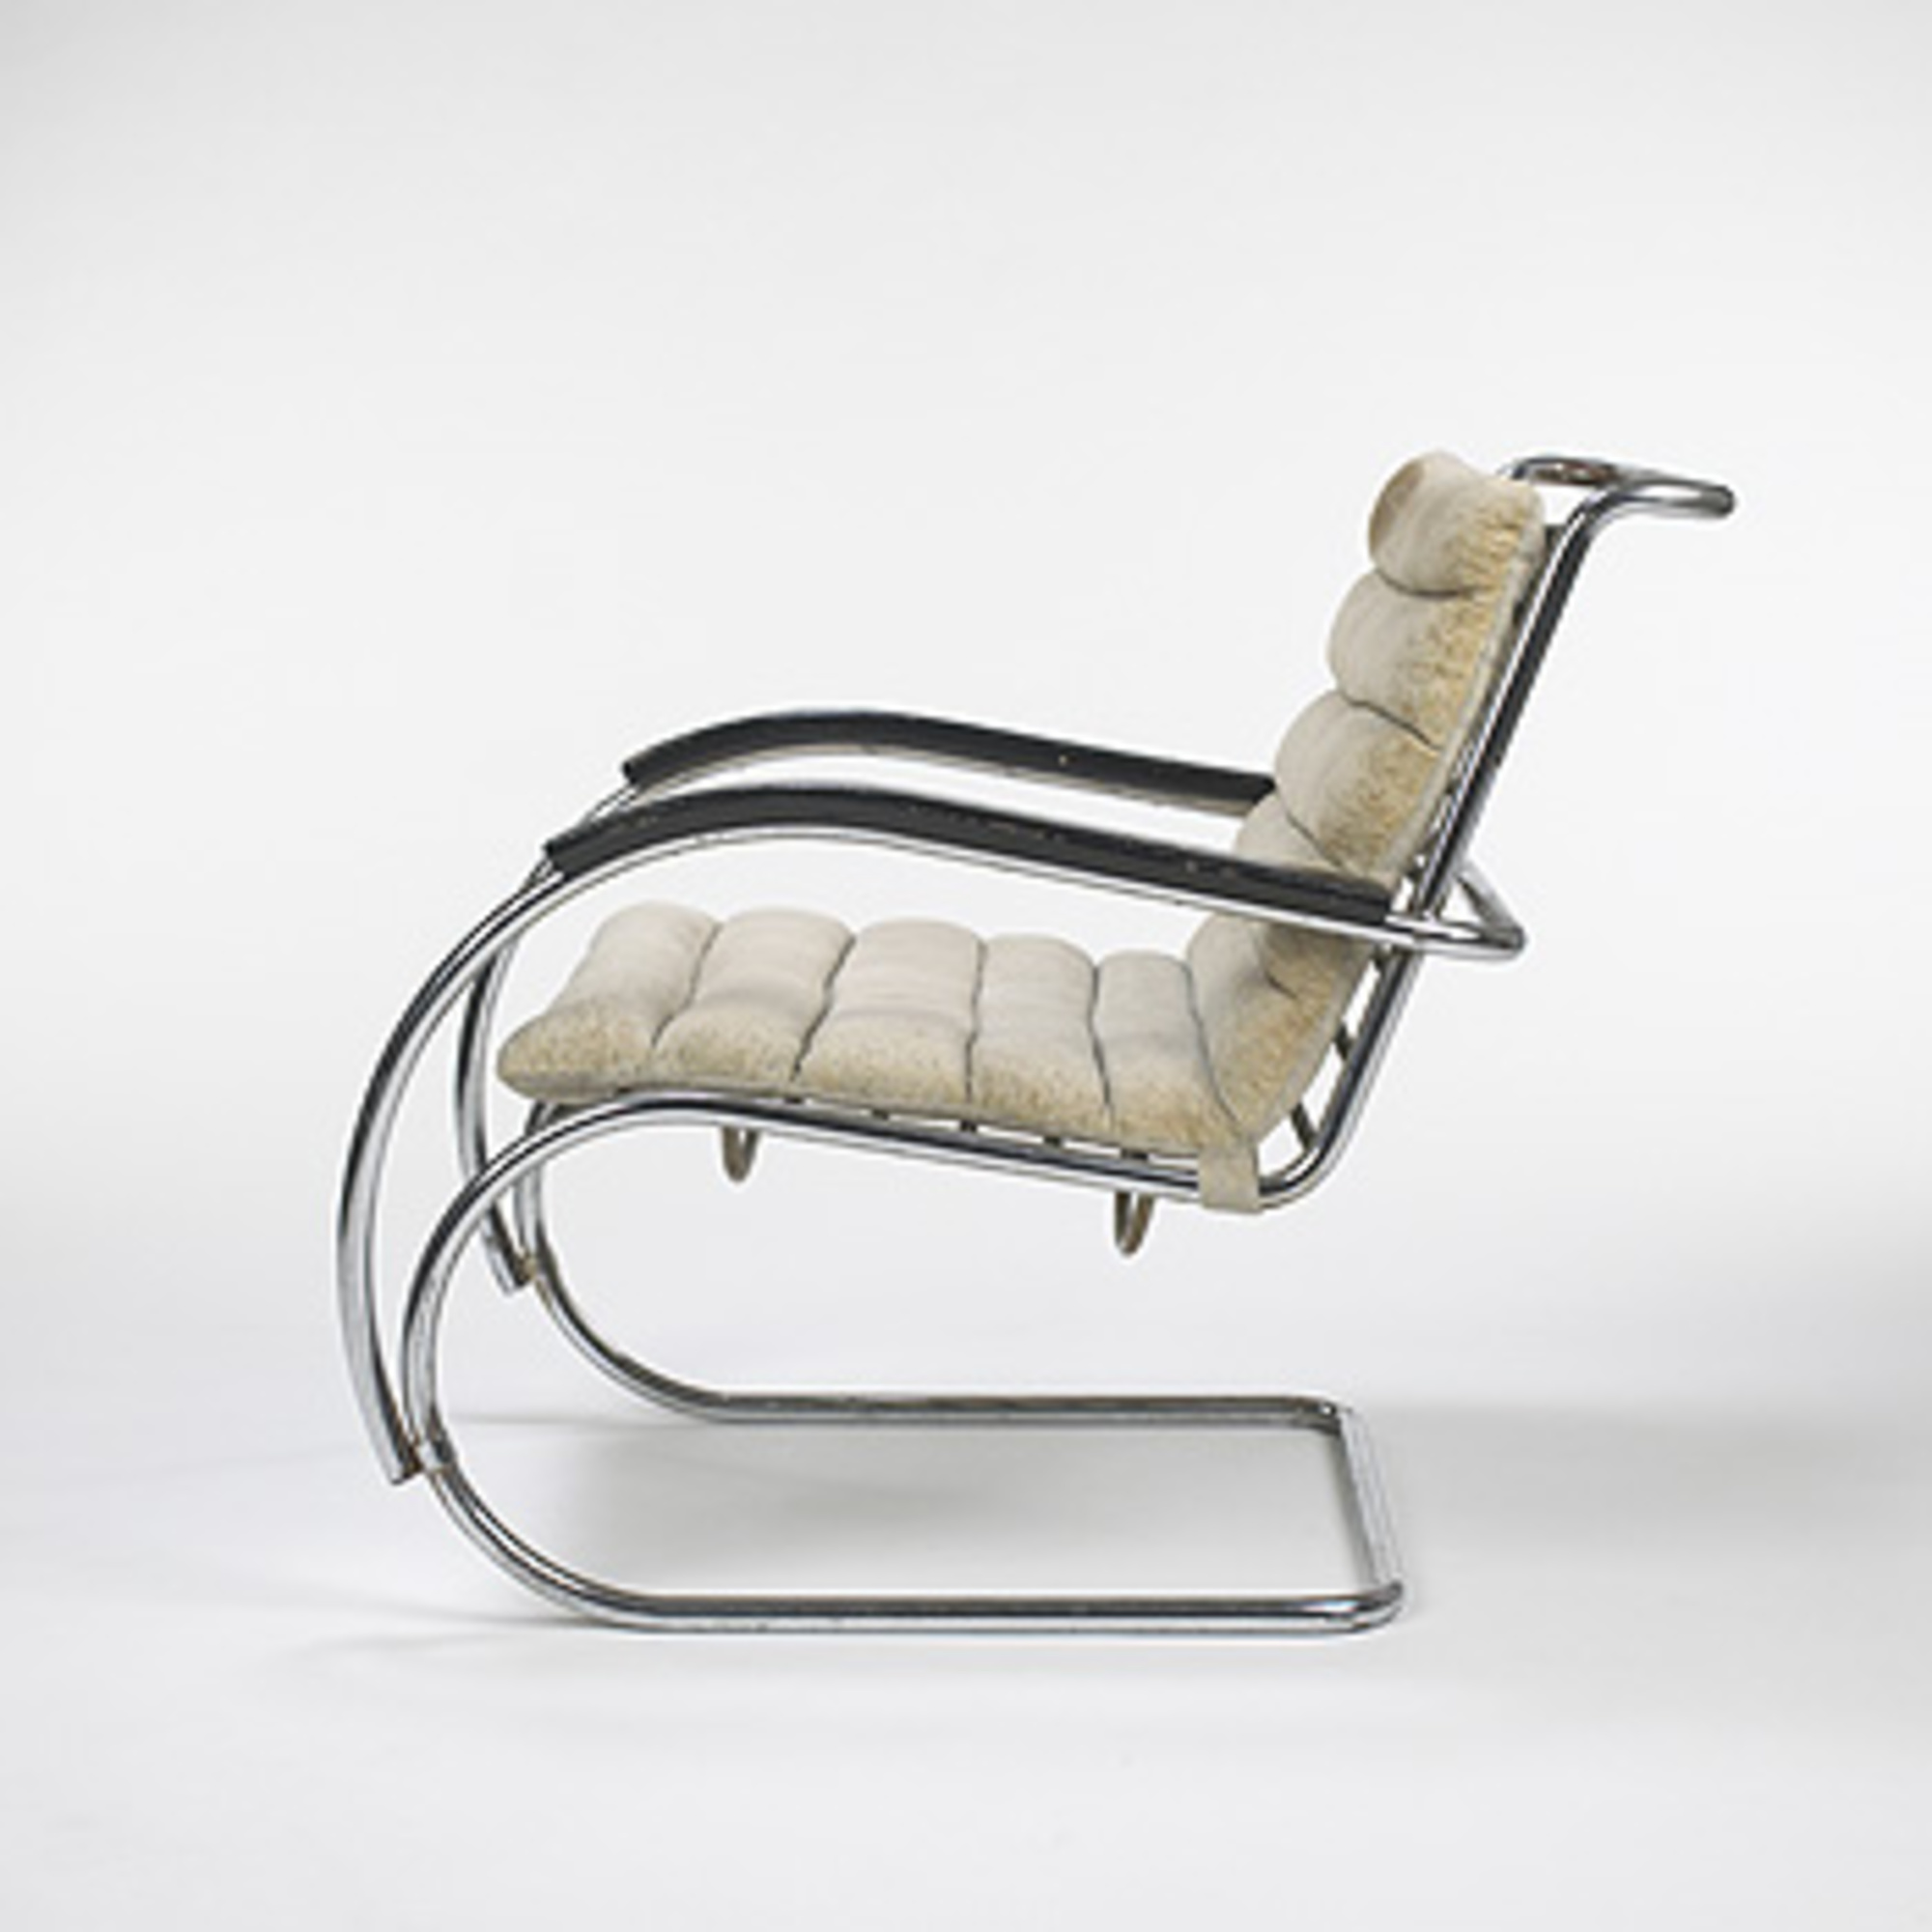 127 Ludwig Mies Van Der Rohe Mr 40 Lounge Chair Important 20th